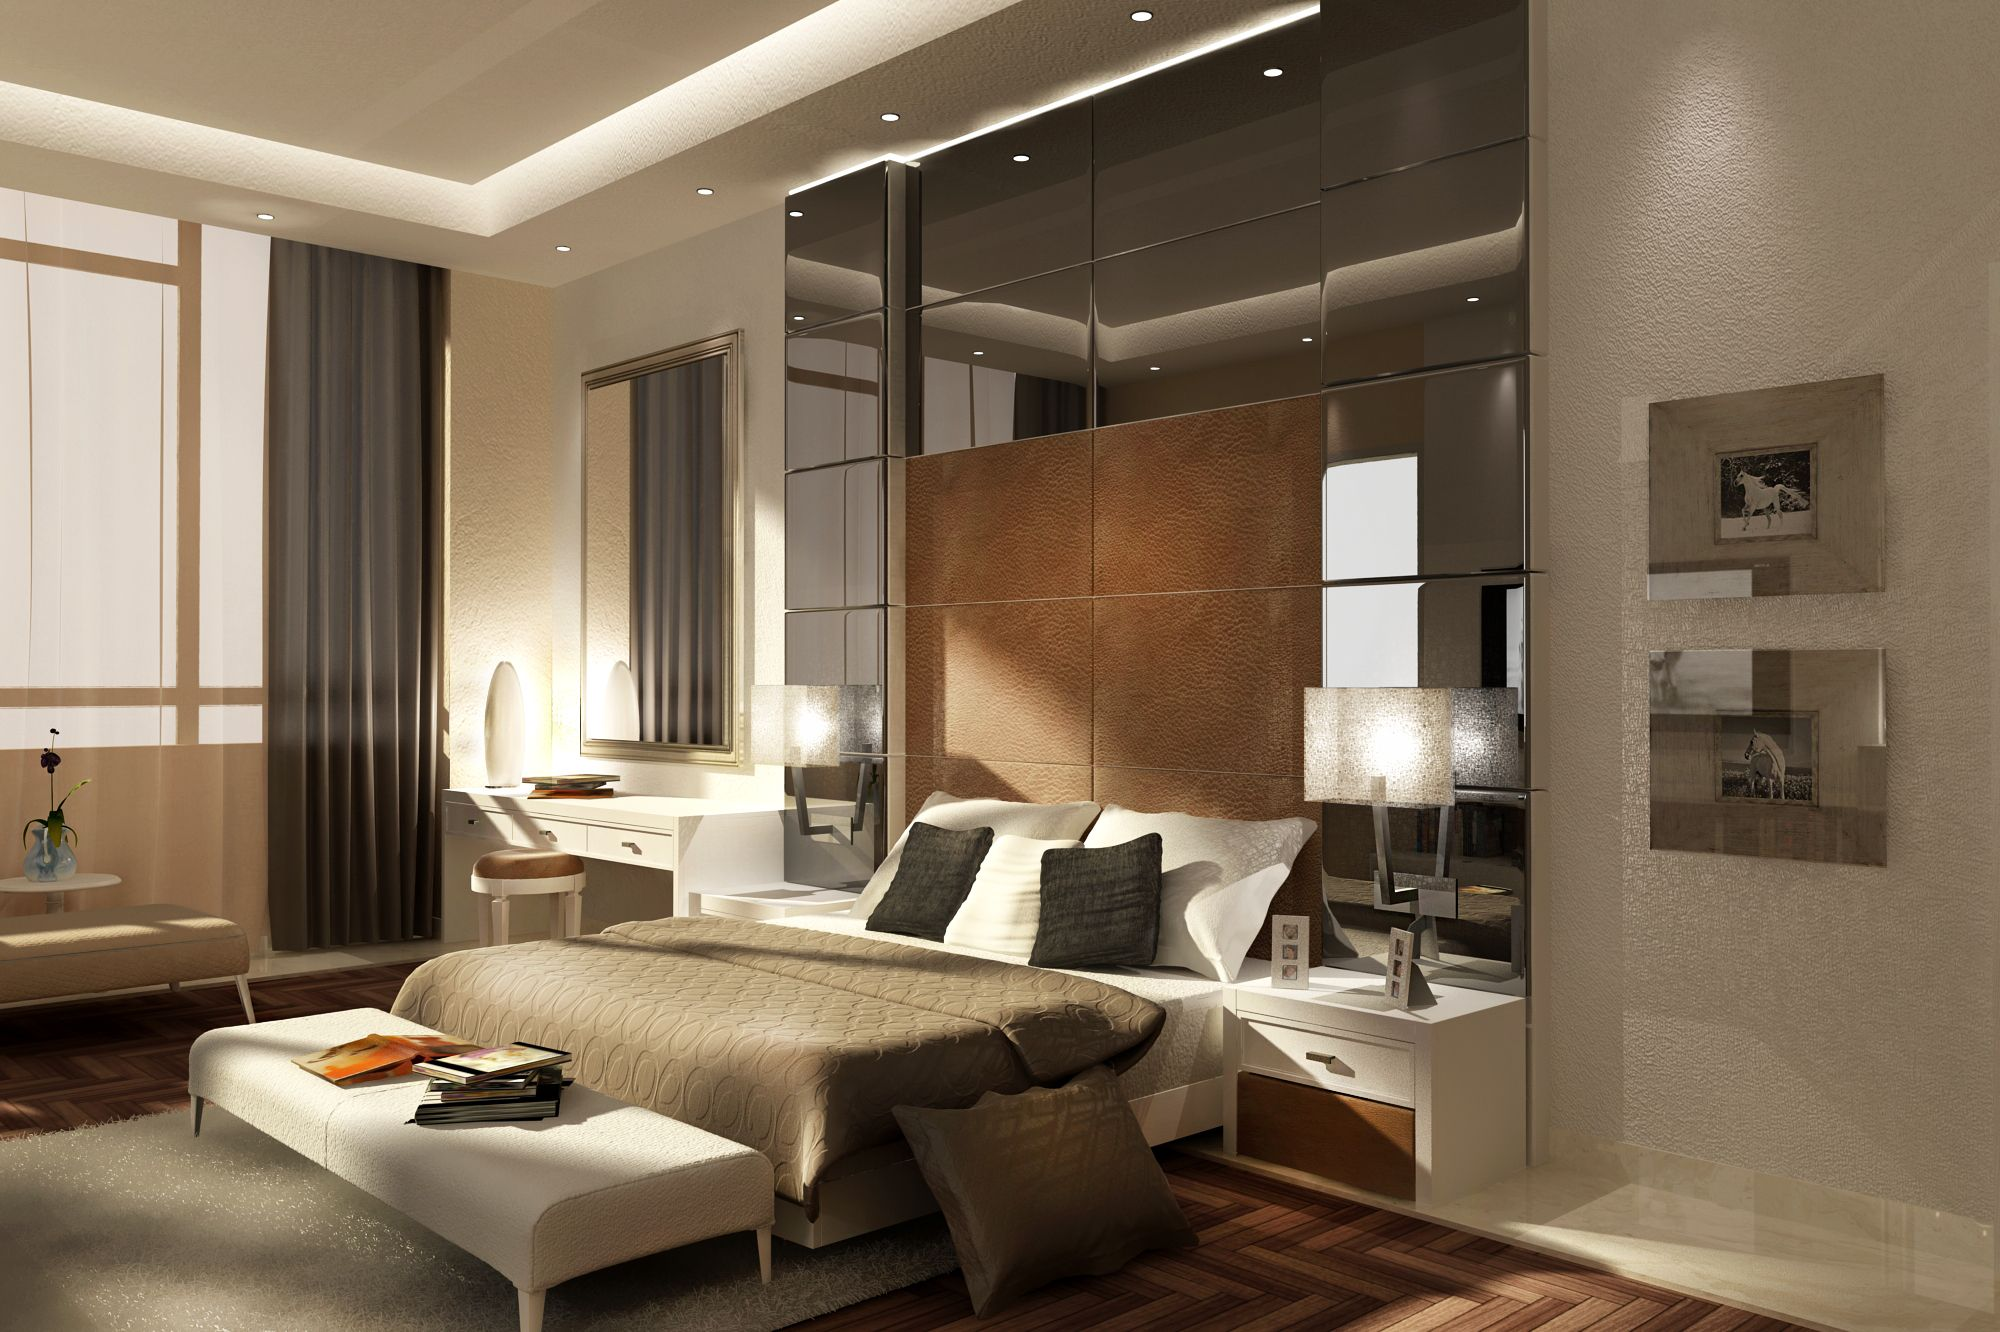 3d render 3d max interior design bedroom design modern for 3d interior designs images